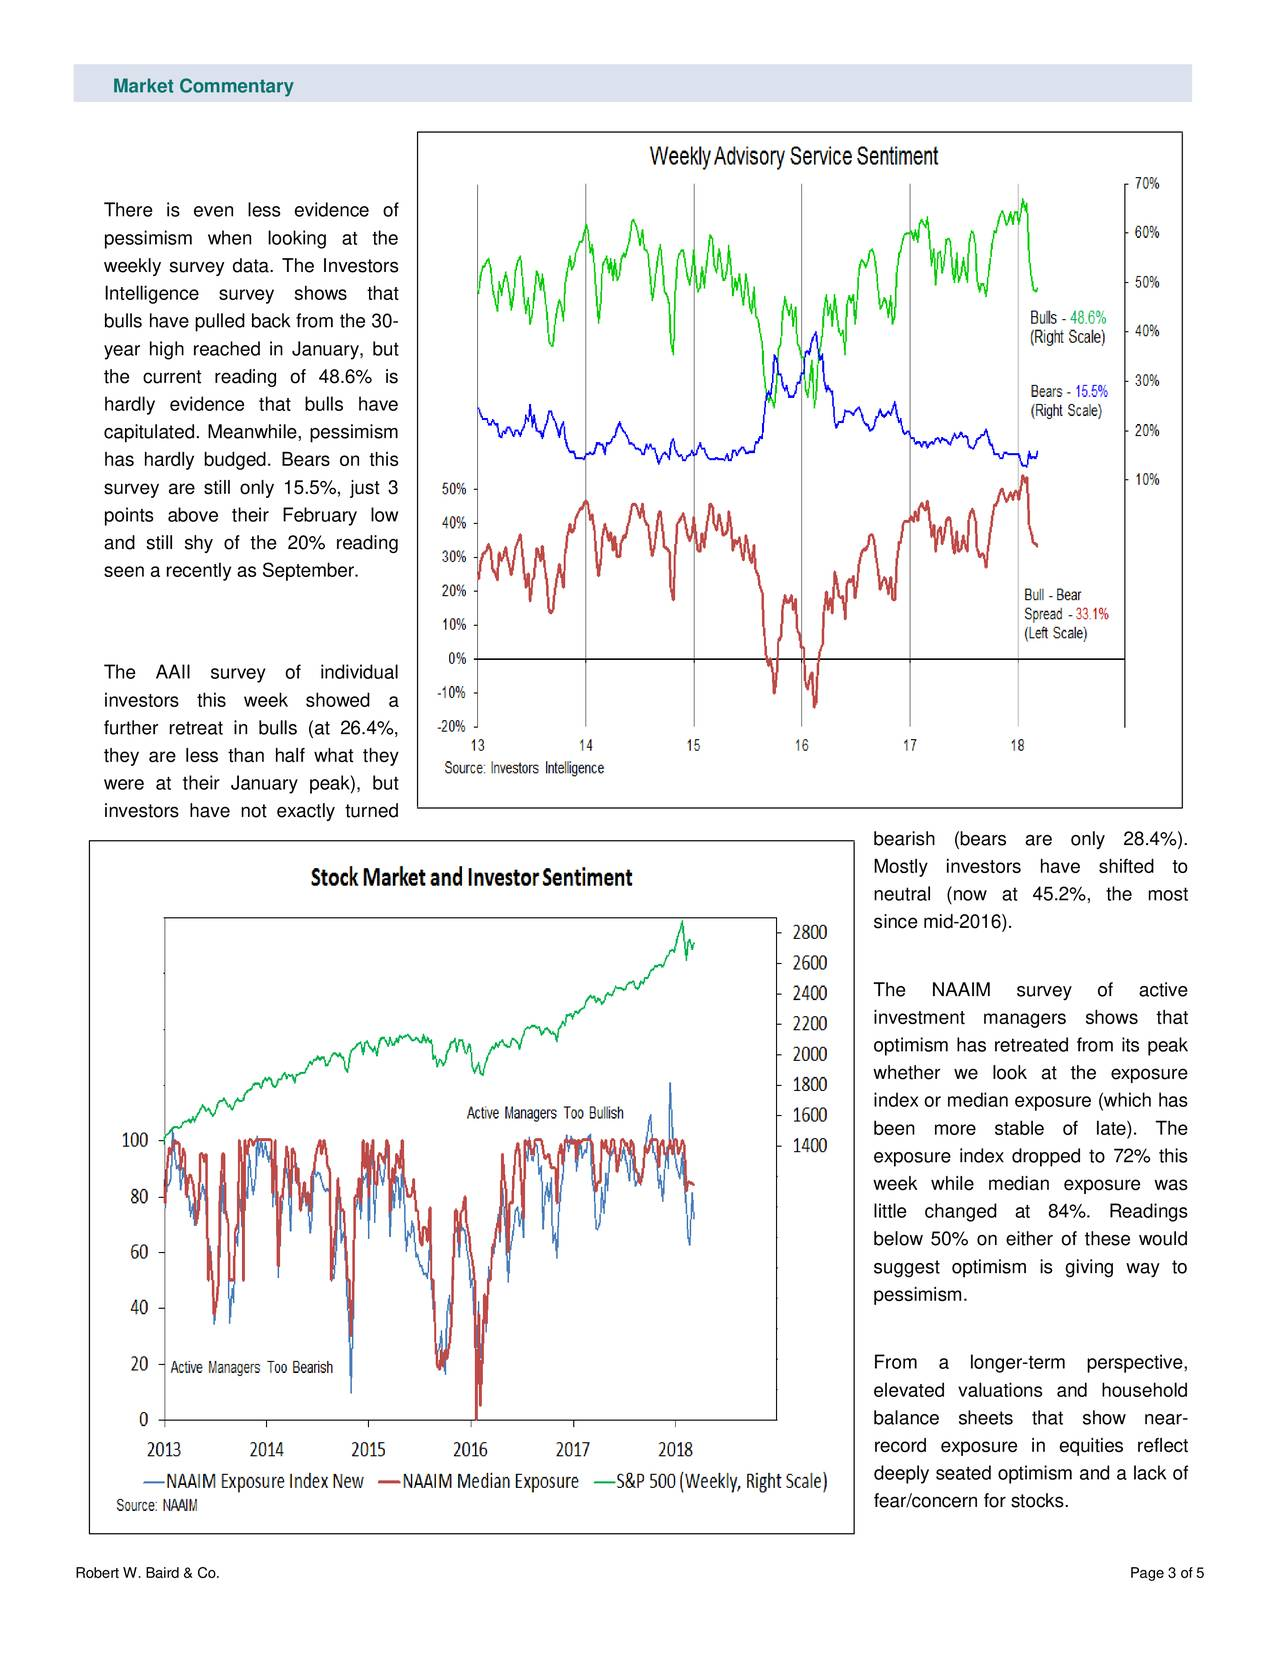 There is even less evidence of pessimism when looking at the weekly survey data. The Investors Intelligence survey shows that bulls have pulled back from the 30- year high reached in January, but the current reading of 48.6% is hardly evidence that bulls have capitulated. Meanwhile, pessimism has hardly budged. Bears on this survey are still only 15.5%, just 3 points above their February low and still shy of the 20% reading seen a recently as September. The AAII survey of individual investors this week showed a further retreat in bulls (at 26.4%, they are less than half what they were at their January peak), but investors have not exactly turned bearish (bears are only 28.4%). Mostly investors have shifted to neutral (now at 45.2%, the most since mid-2016). The NAAIM survey of active investment man agers shows that optimism has retreated from its peak whether we look at the exposure index or median exposure (which has been more stable of late). The exposure index dropped to 72% this week while median exposure was little changed at 84%. Readings below 50% on either of these would suggest optimism is giving way to pessimism. From a longer -term perspective, elevated valuations and househol d balance sheets that show near - record exposure in equities reflect deeply seated optimism and a lack of fear/concern for stocks. Robert W. Baird & Co. Page 3 of 5